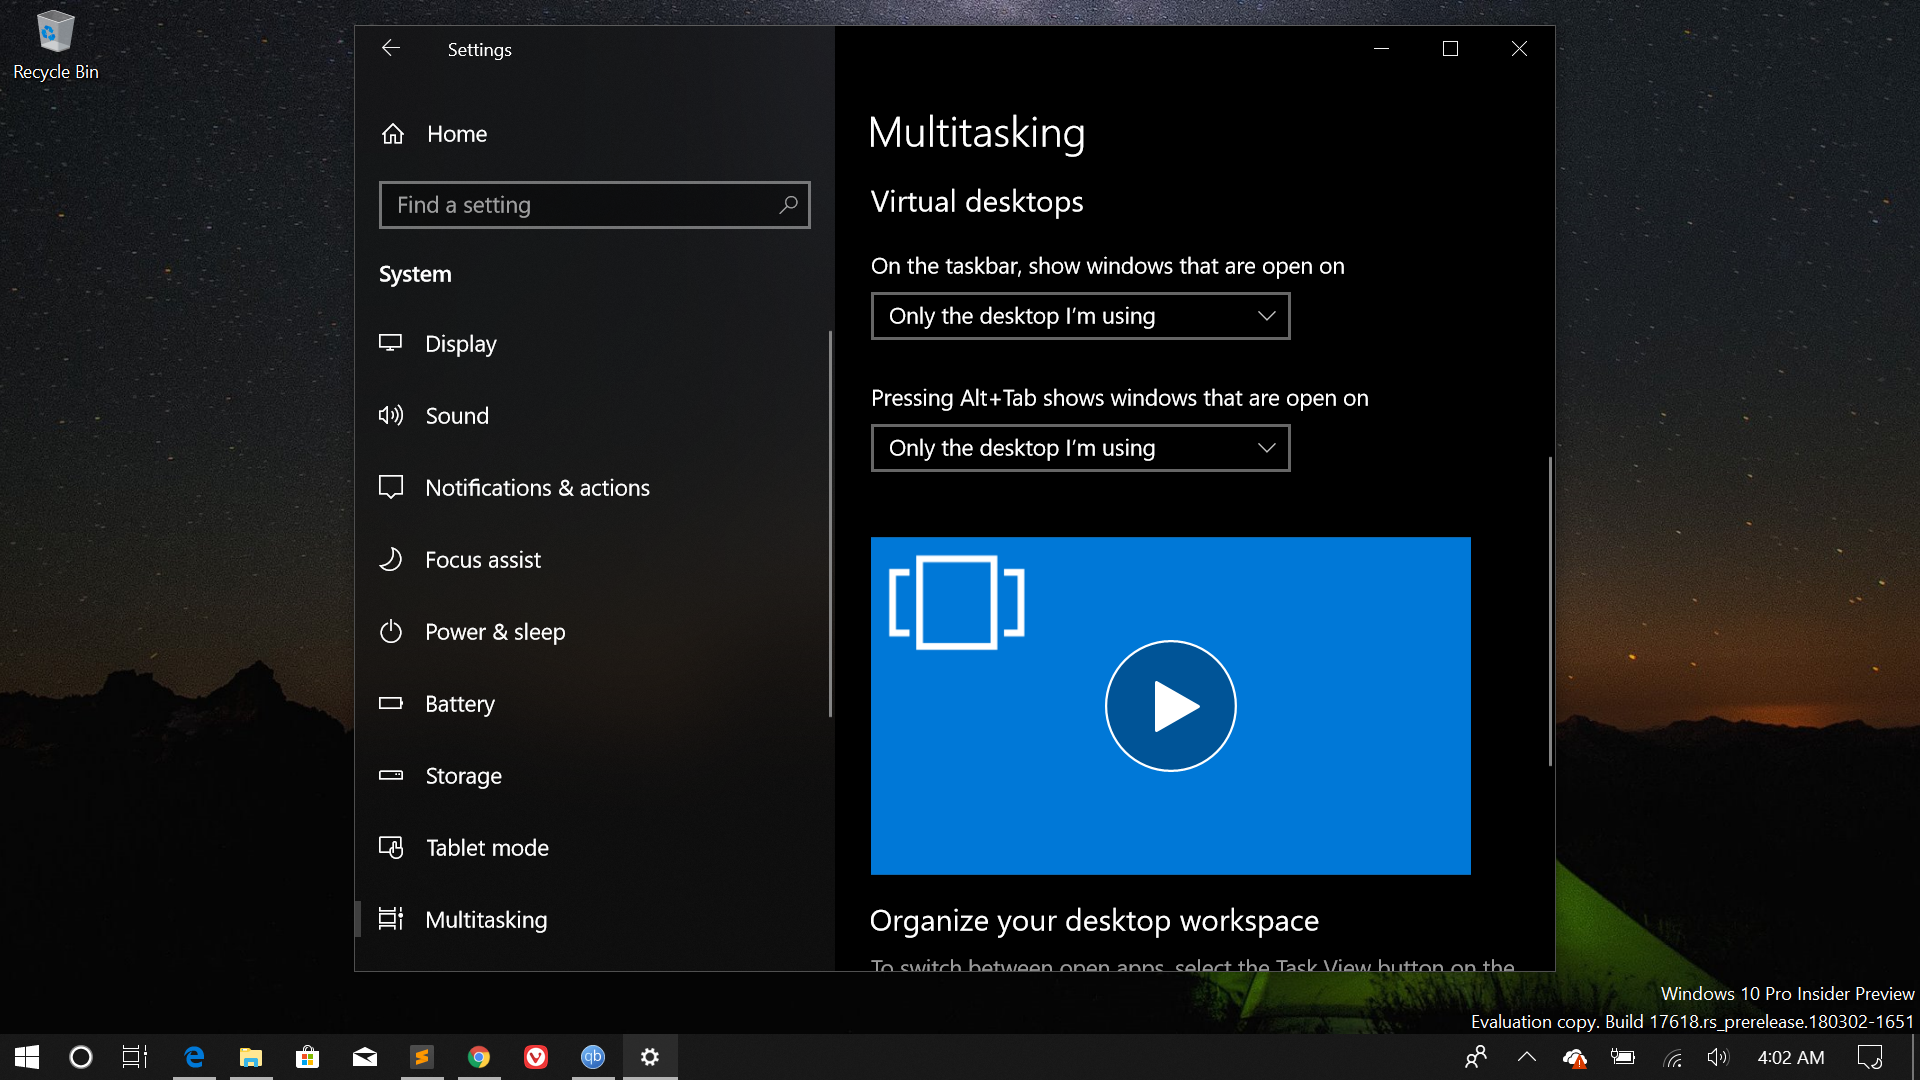 No sets feature for me in Windows 10 build 17618 - Microsoft Community